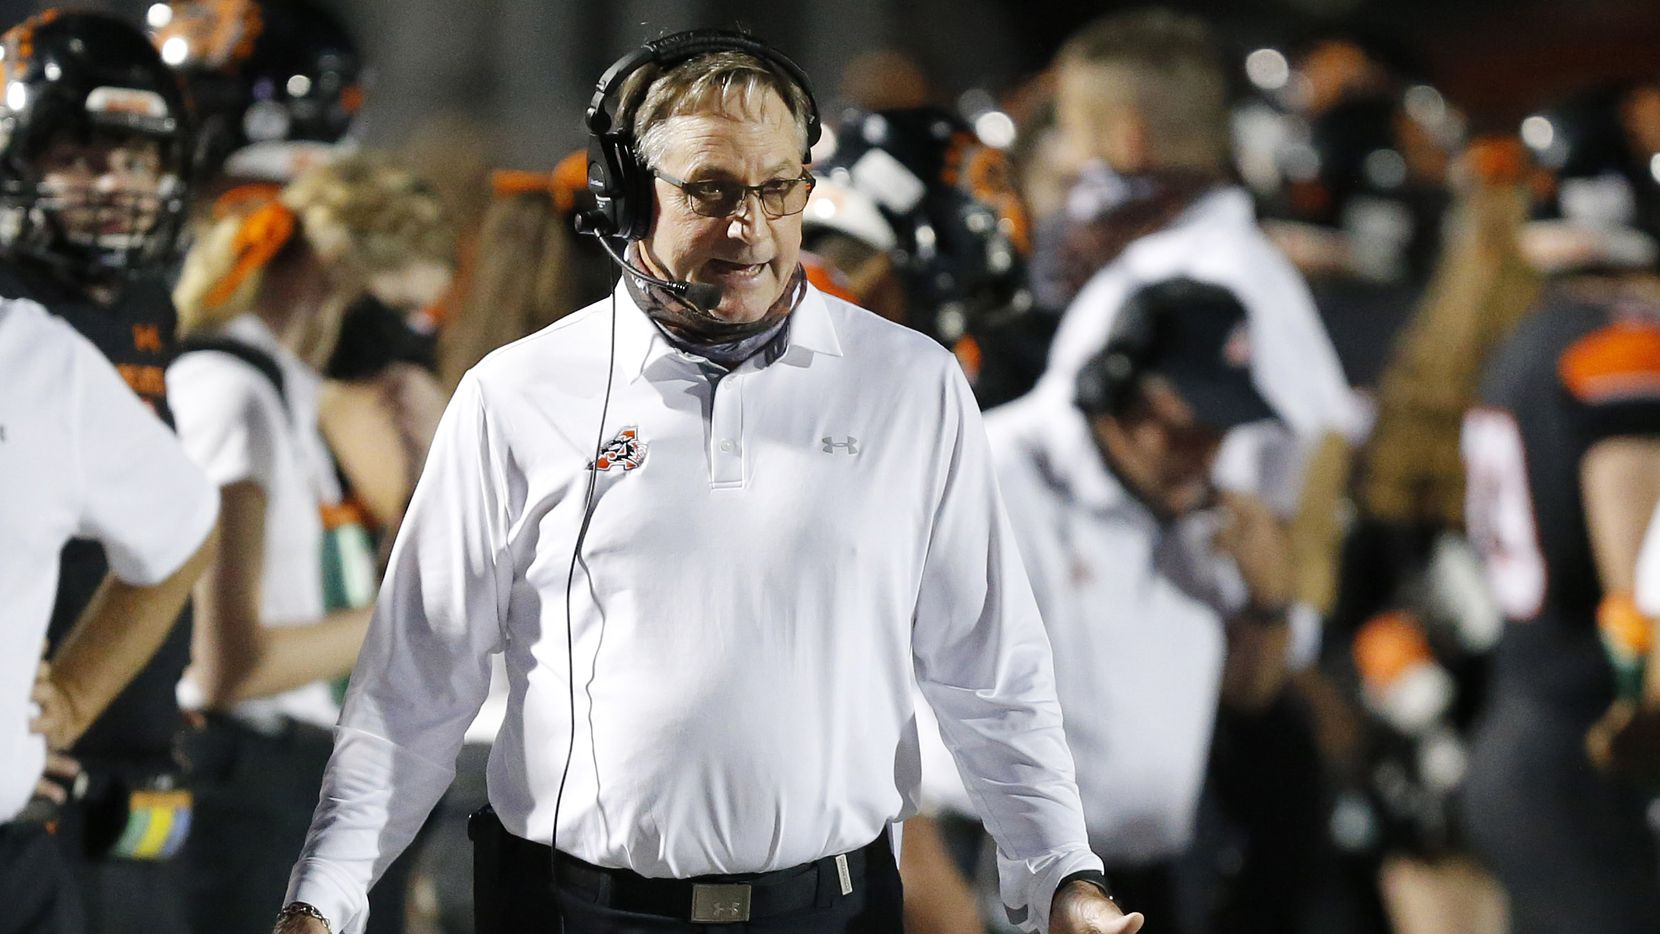 Aledo head coach Tim Buchanan is pictured on the sideline as his team faces Frisco Lone Star at Bearcat Stadium in Aledo, Texas, Friday, October 2 2020. Aledo won, 34-32. (Tom Fox/The Dallas Morning News)